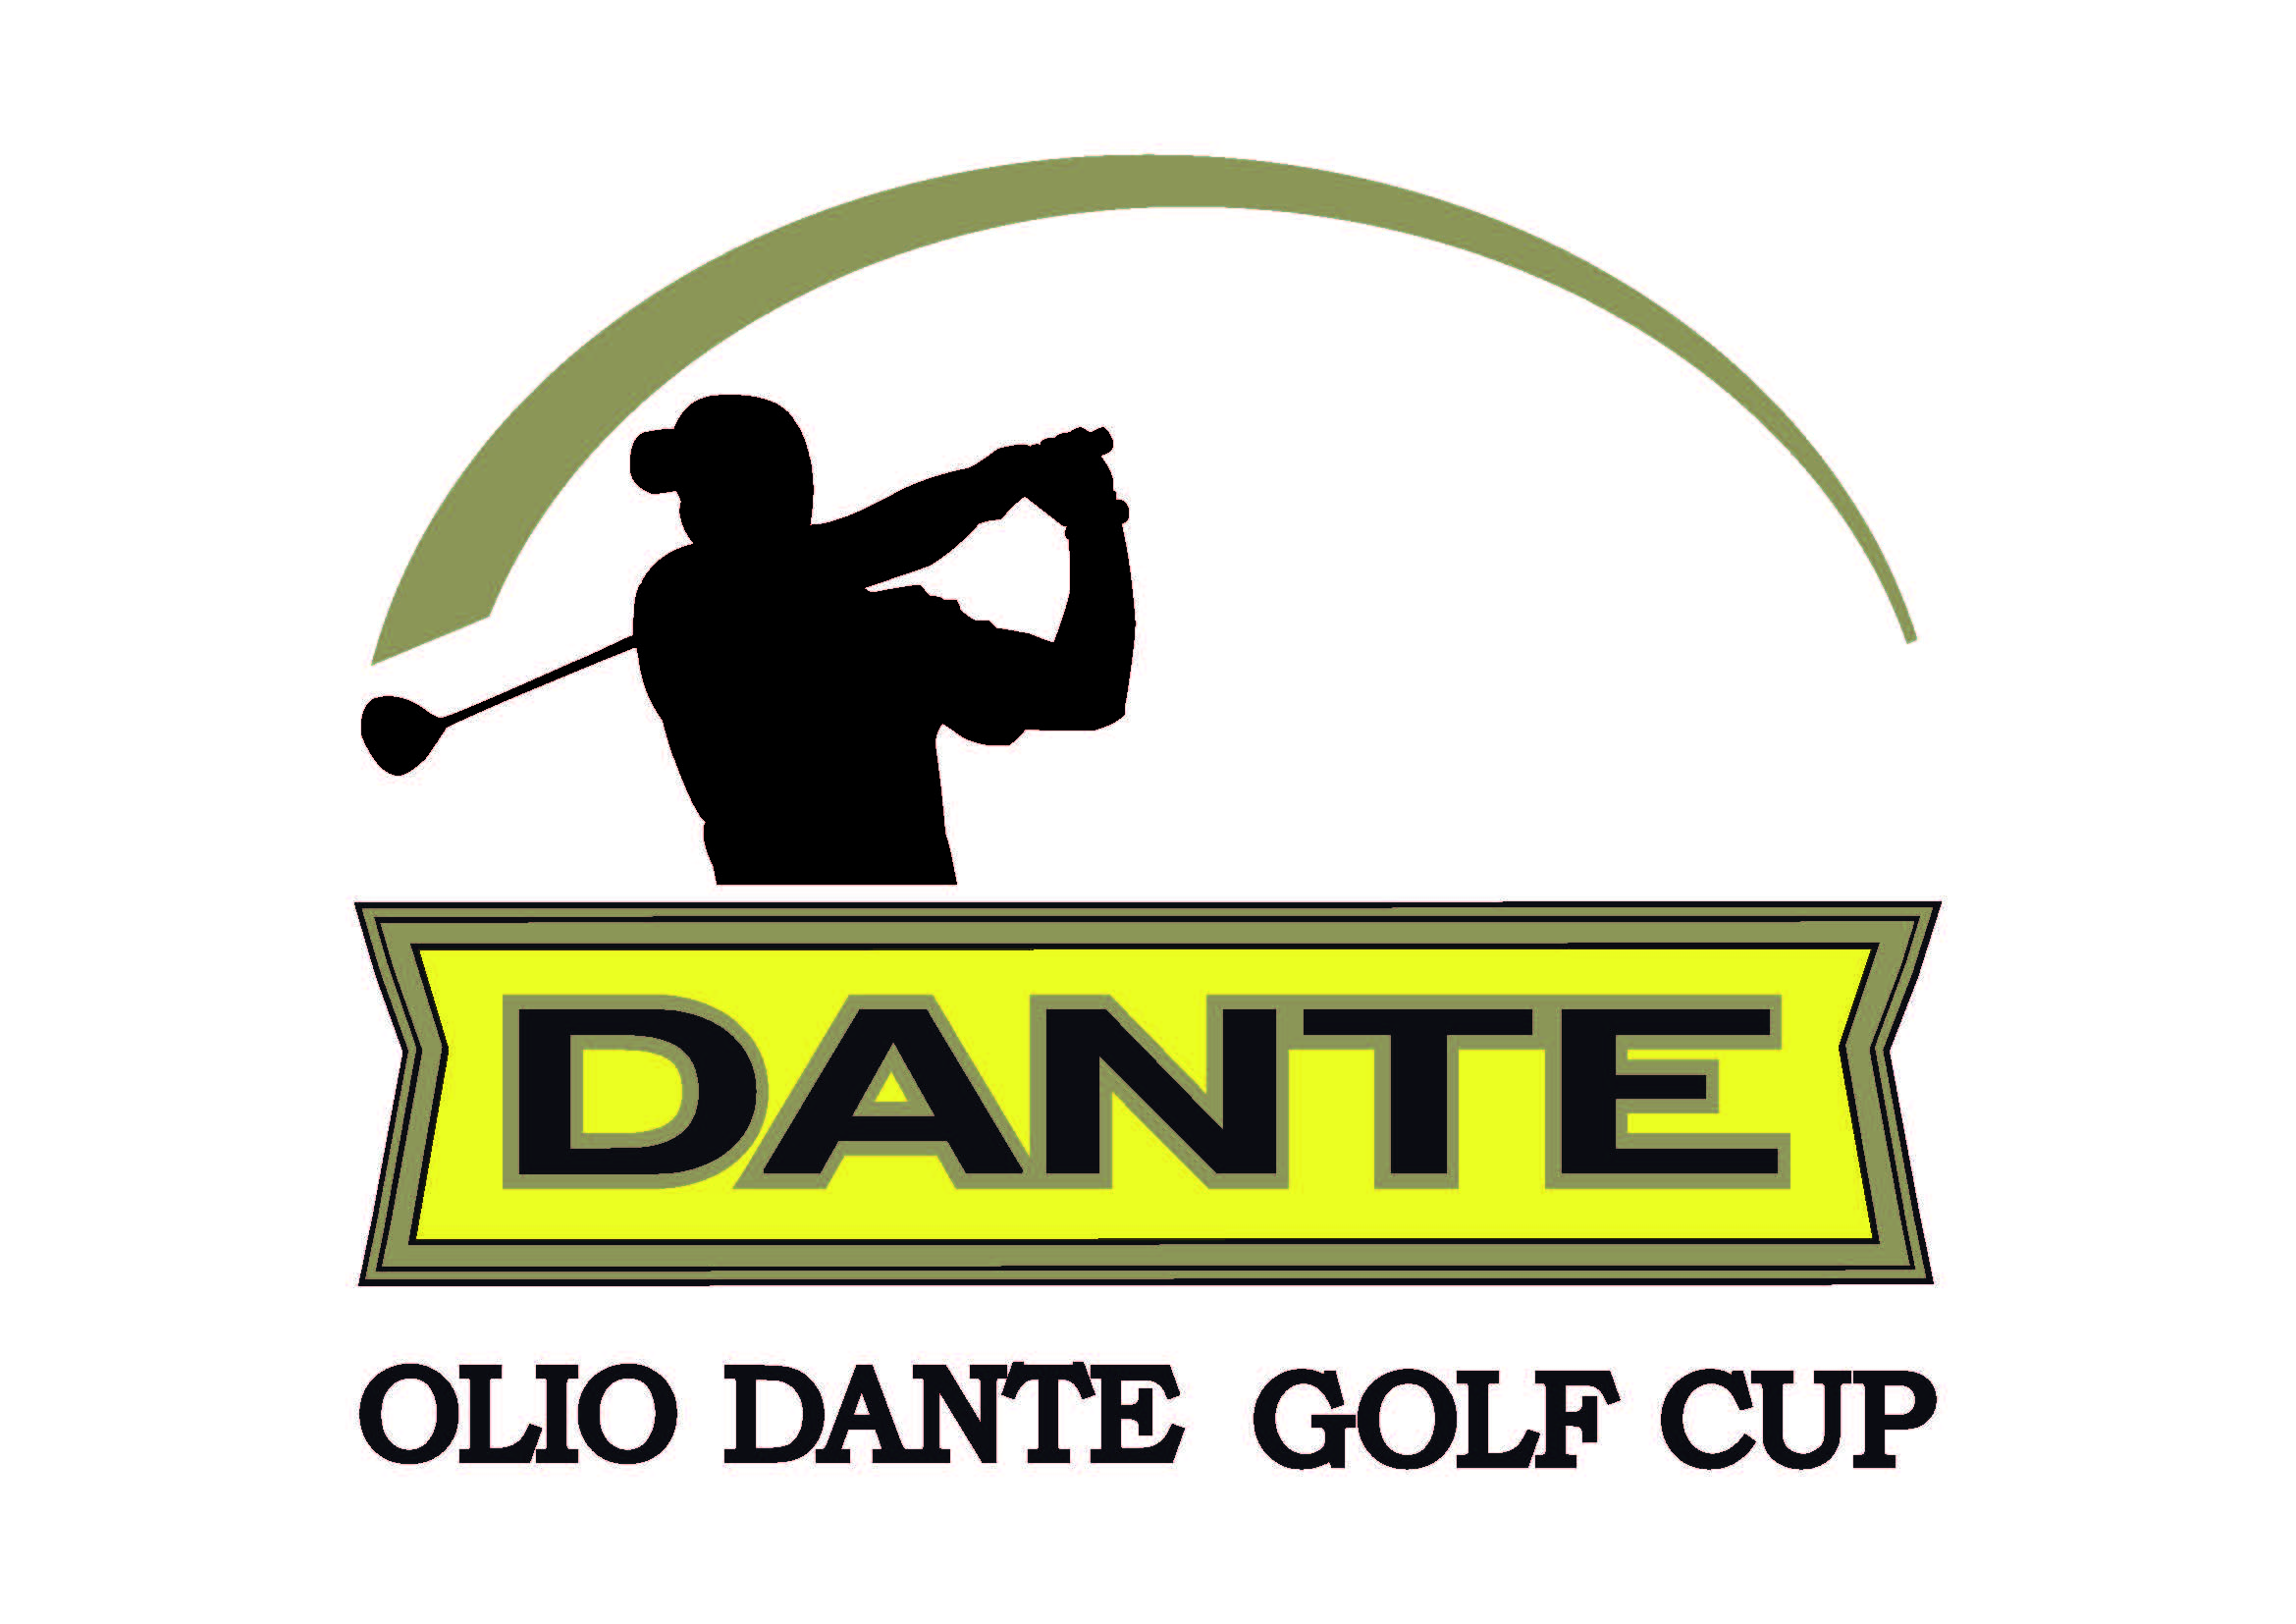 Golf Cup 2020, Olio Dante lands on the green and becomes sponsor